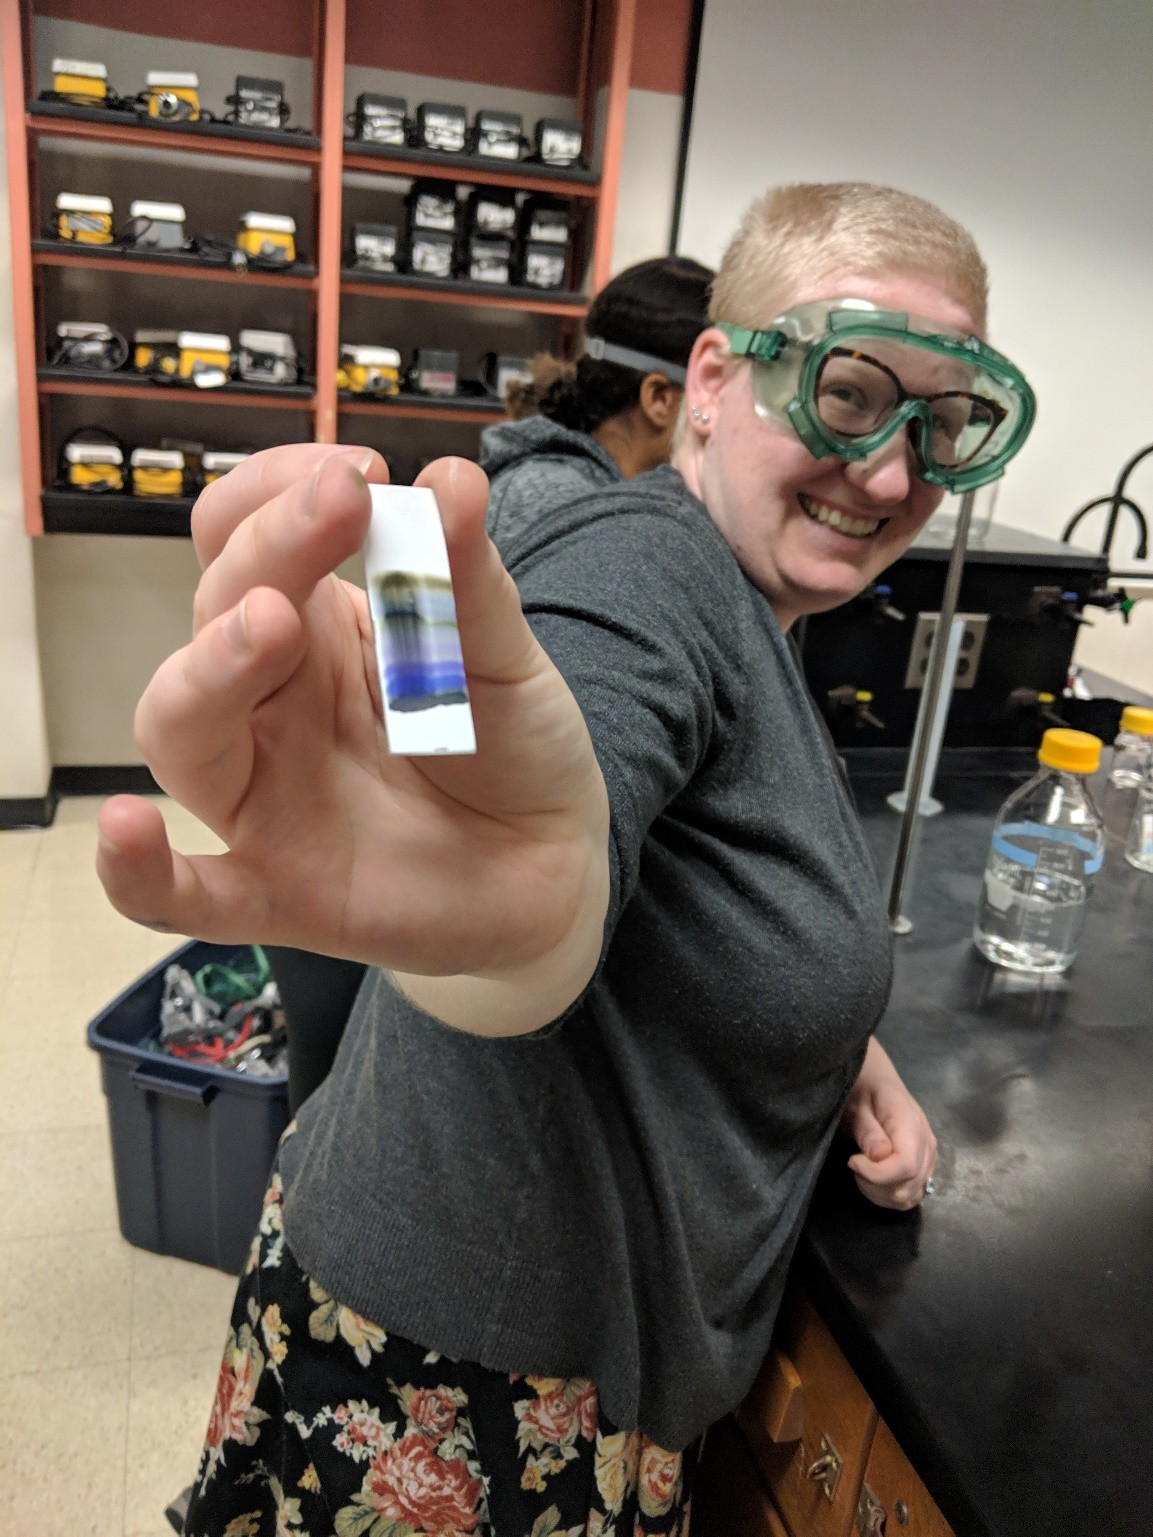 A smiling volunteer holds up a strip of paper with blue and black separating dyes